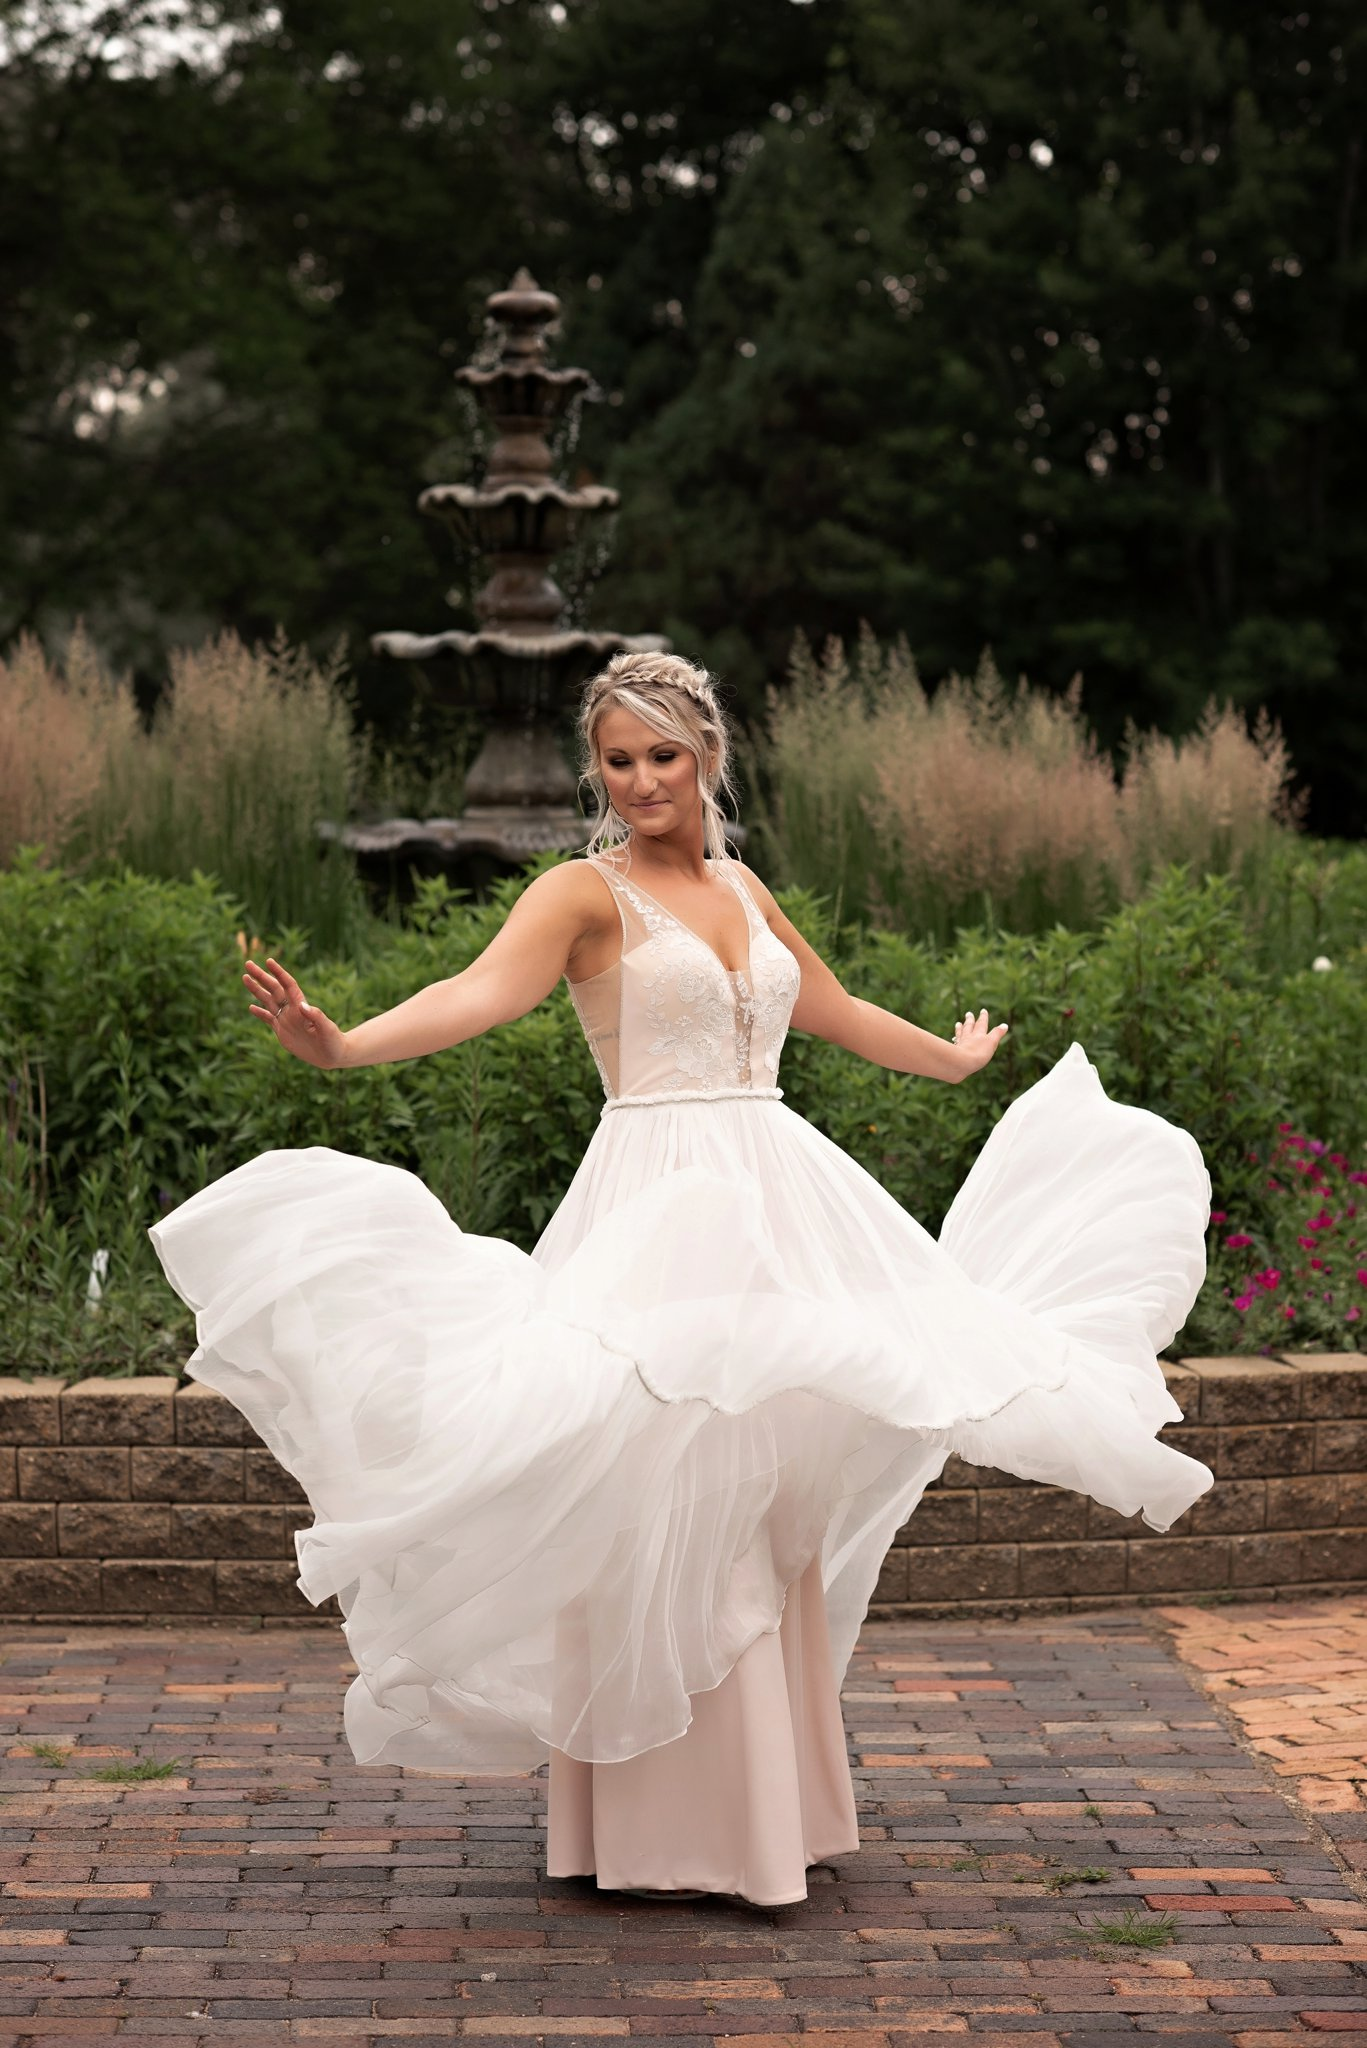 brides flowy dress spins in the air